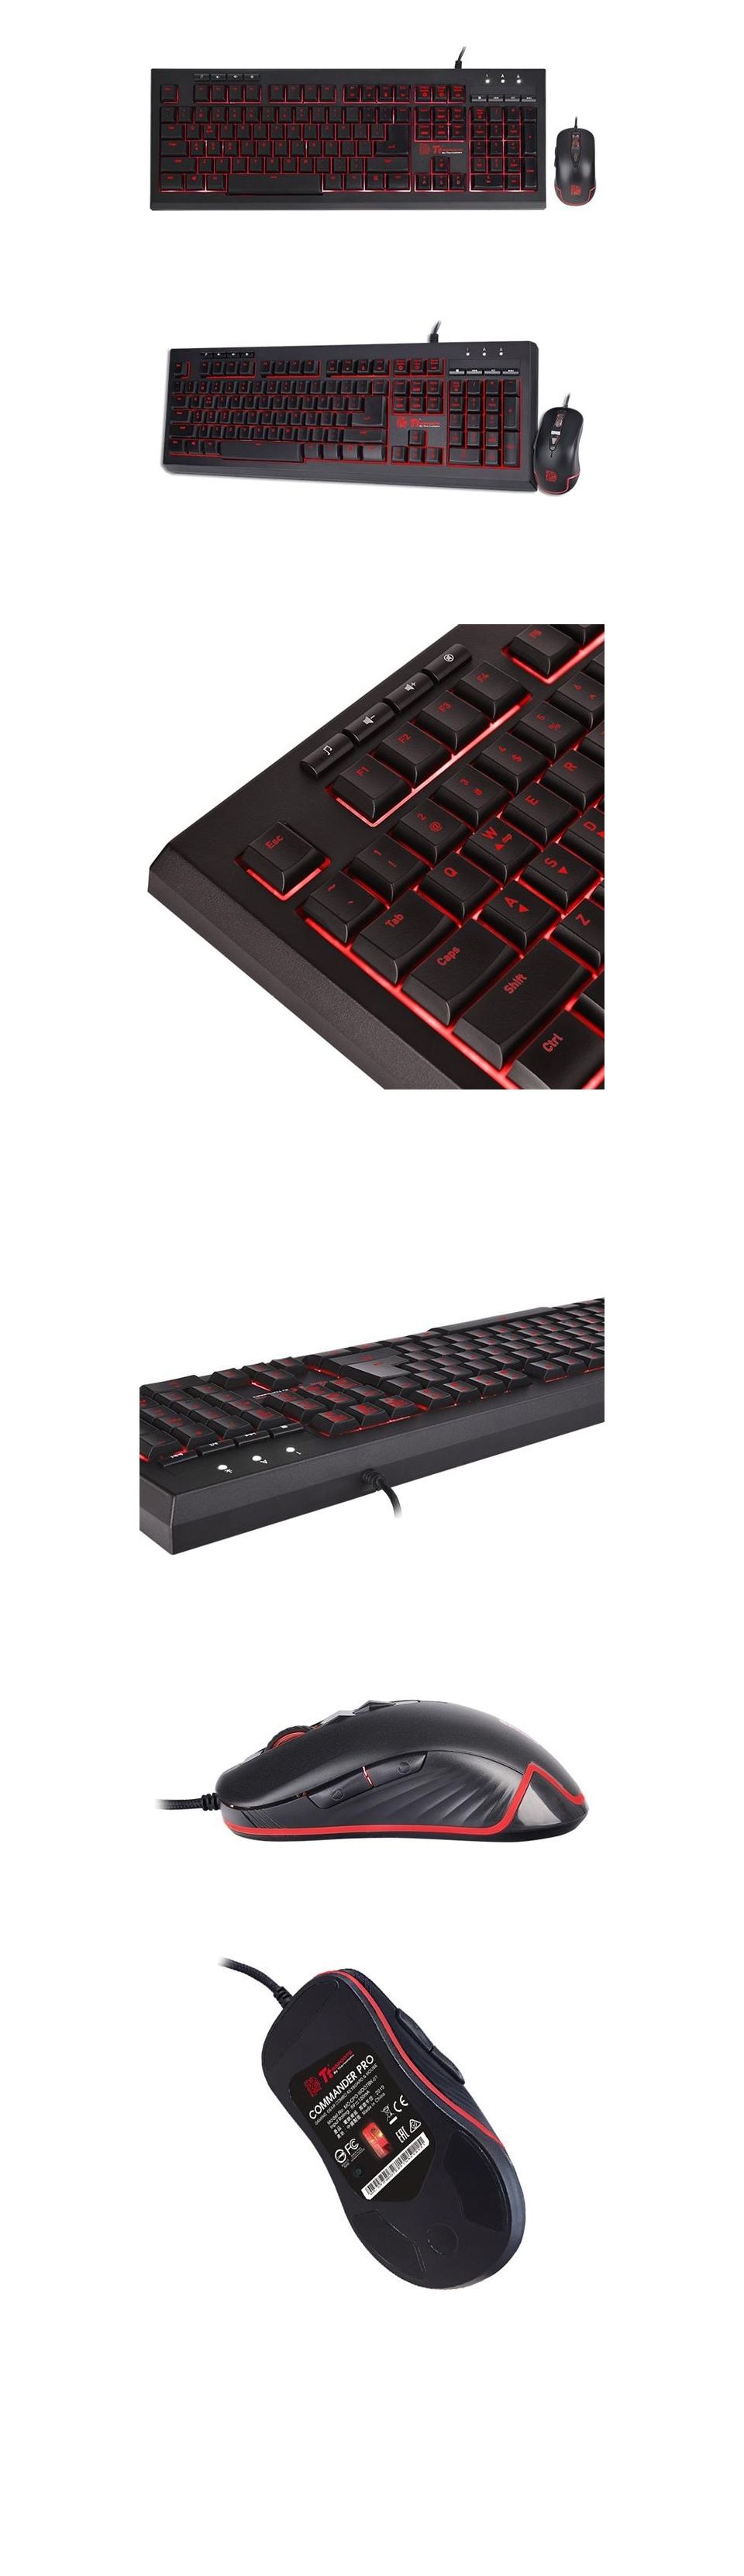 Tt eSPORTS Commander Pro Gaming Keyboard and Mouse Combo product